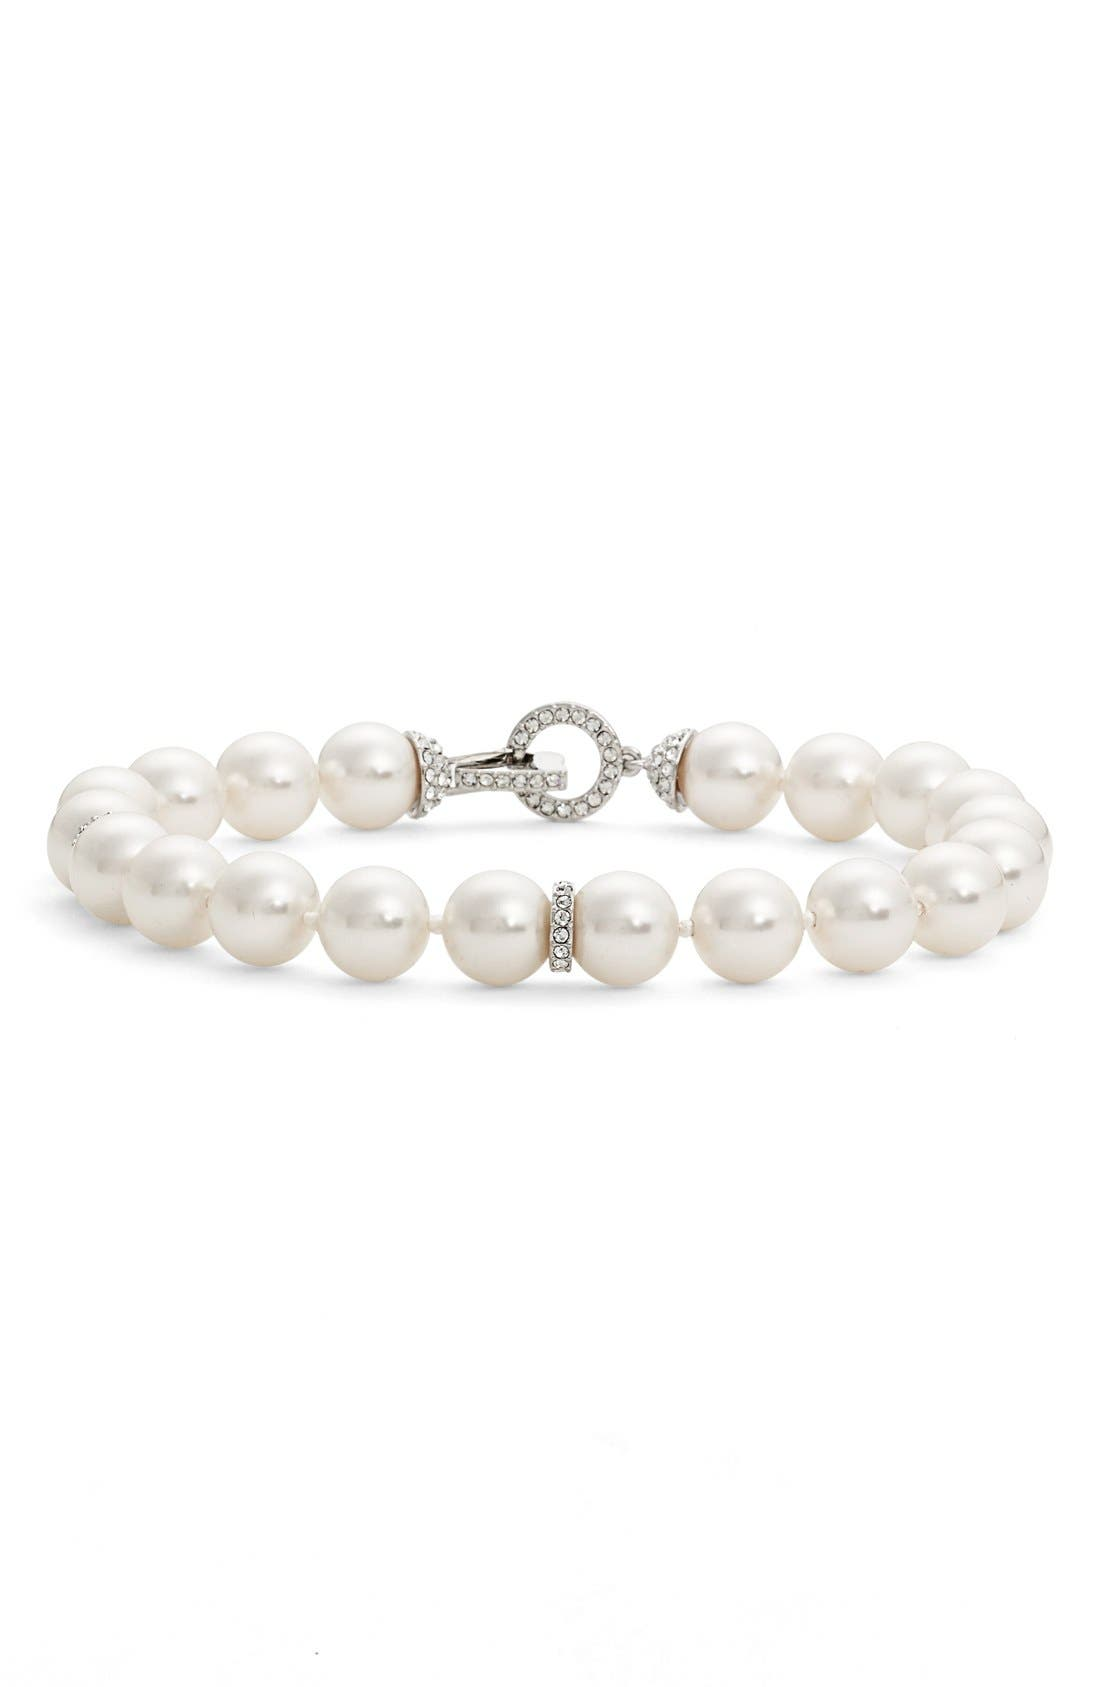 Single Row Imitation Pearl Bracelet,                         Main,                         color, Ivory